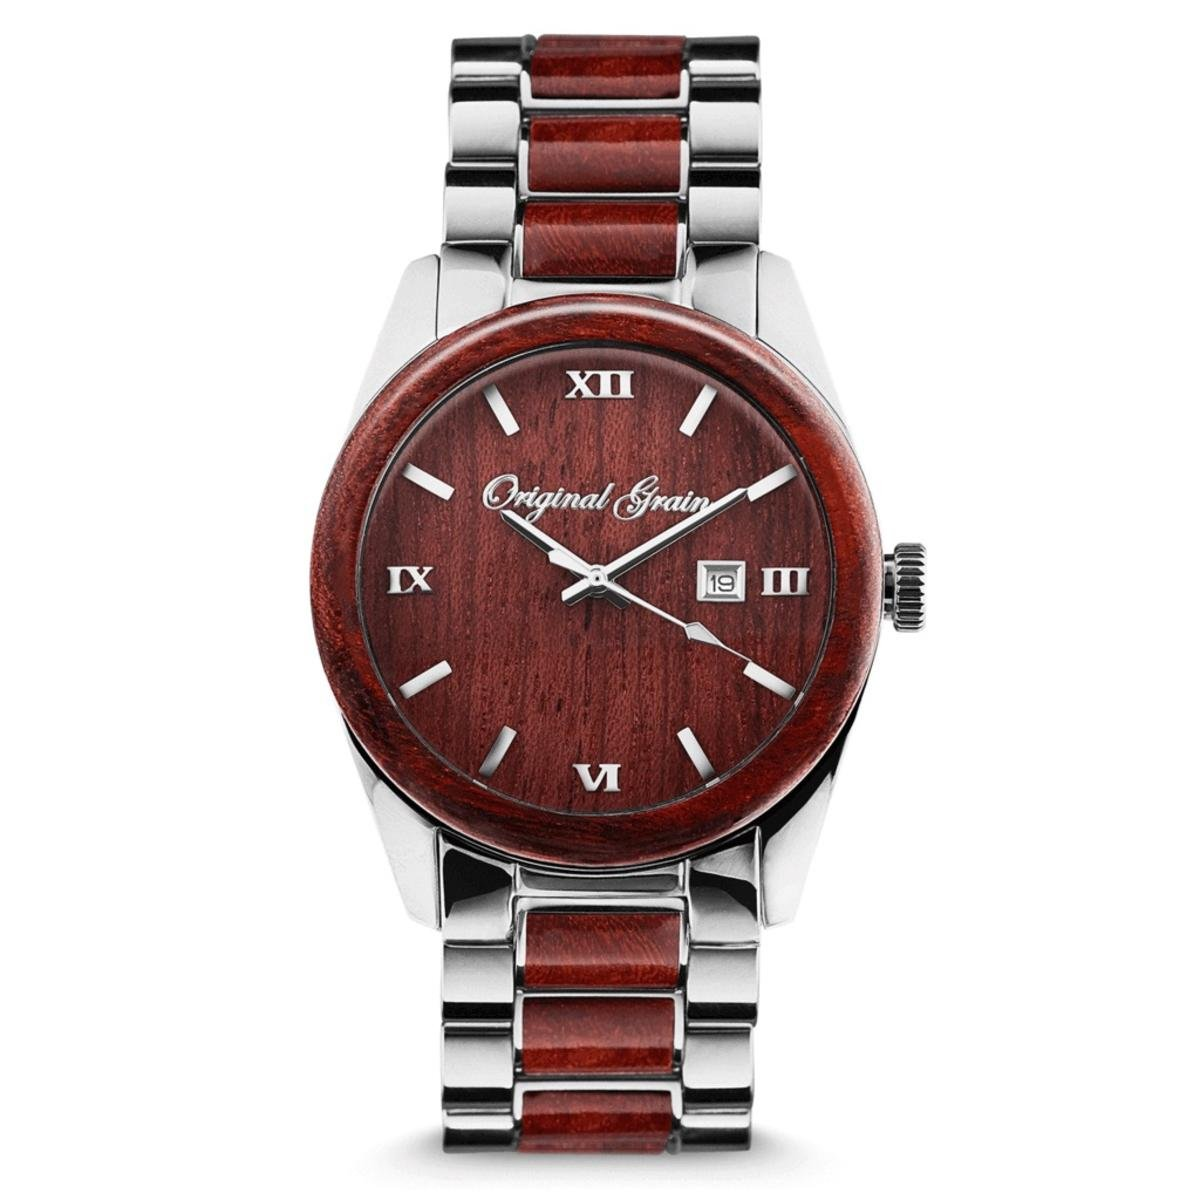 NEW Original Grain Wood Wrist Watch | Classic Collection 43MM Analog Watch | Wood And Stainless Steel Watch Band | Japanese Quartz Movement | Rosewood